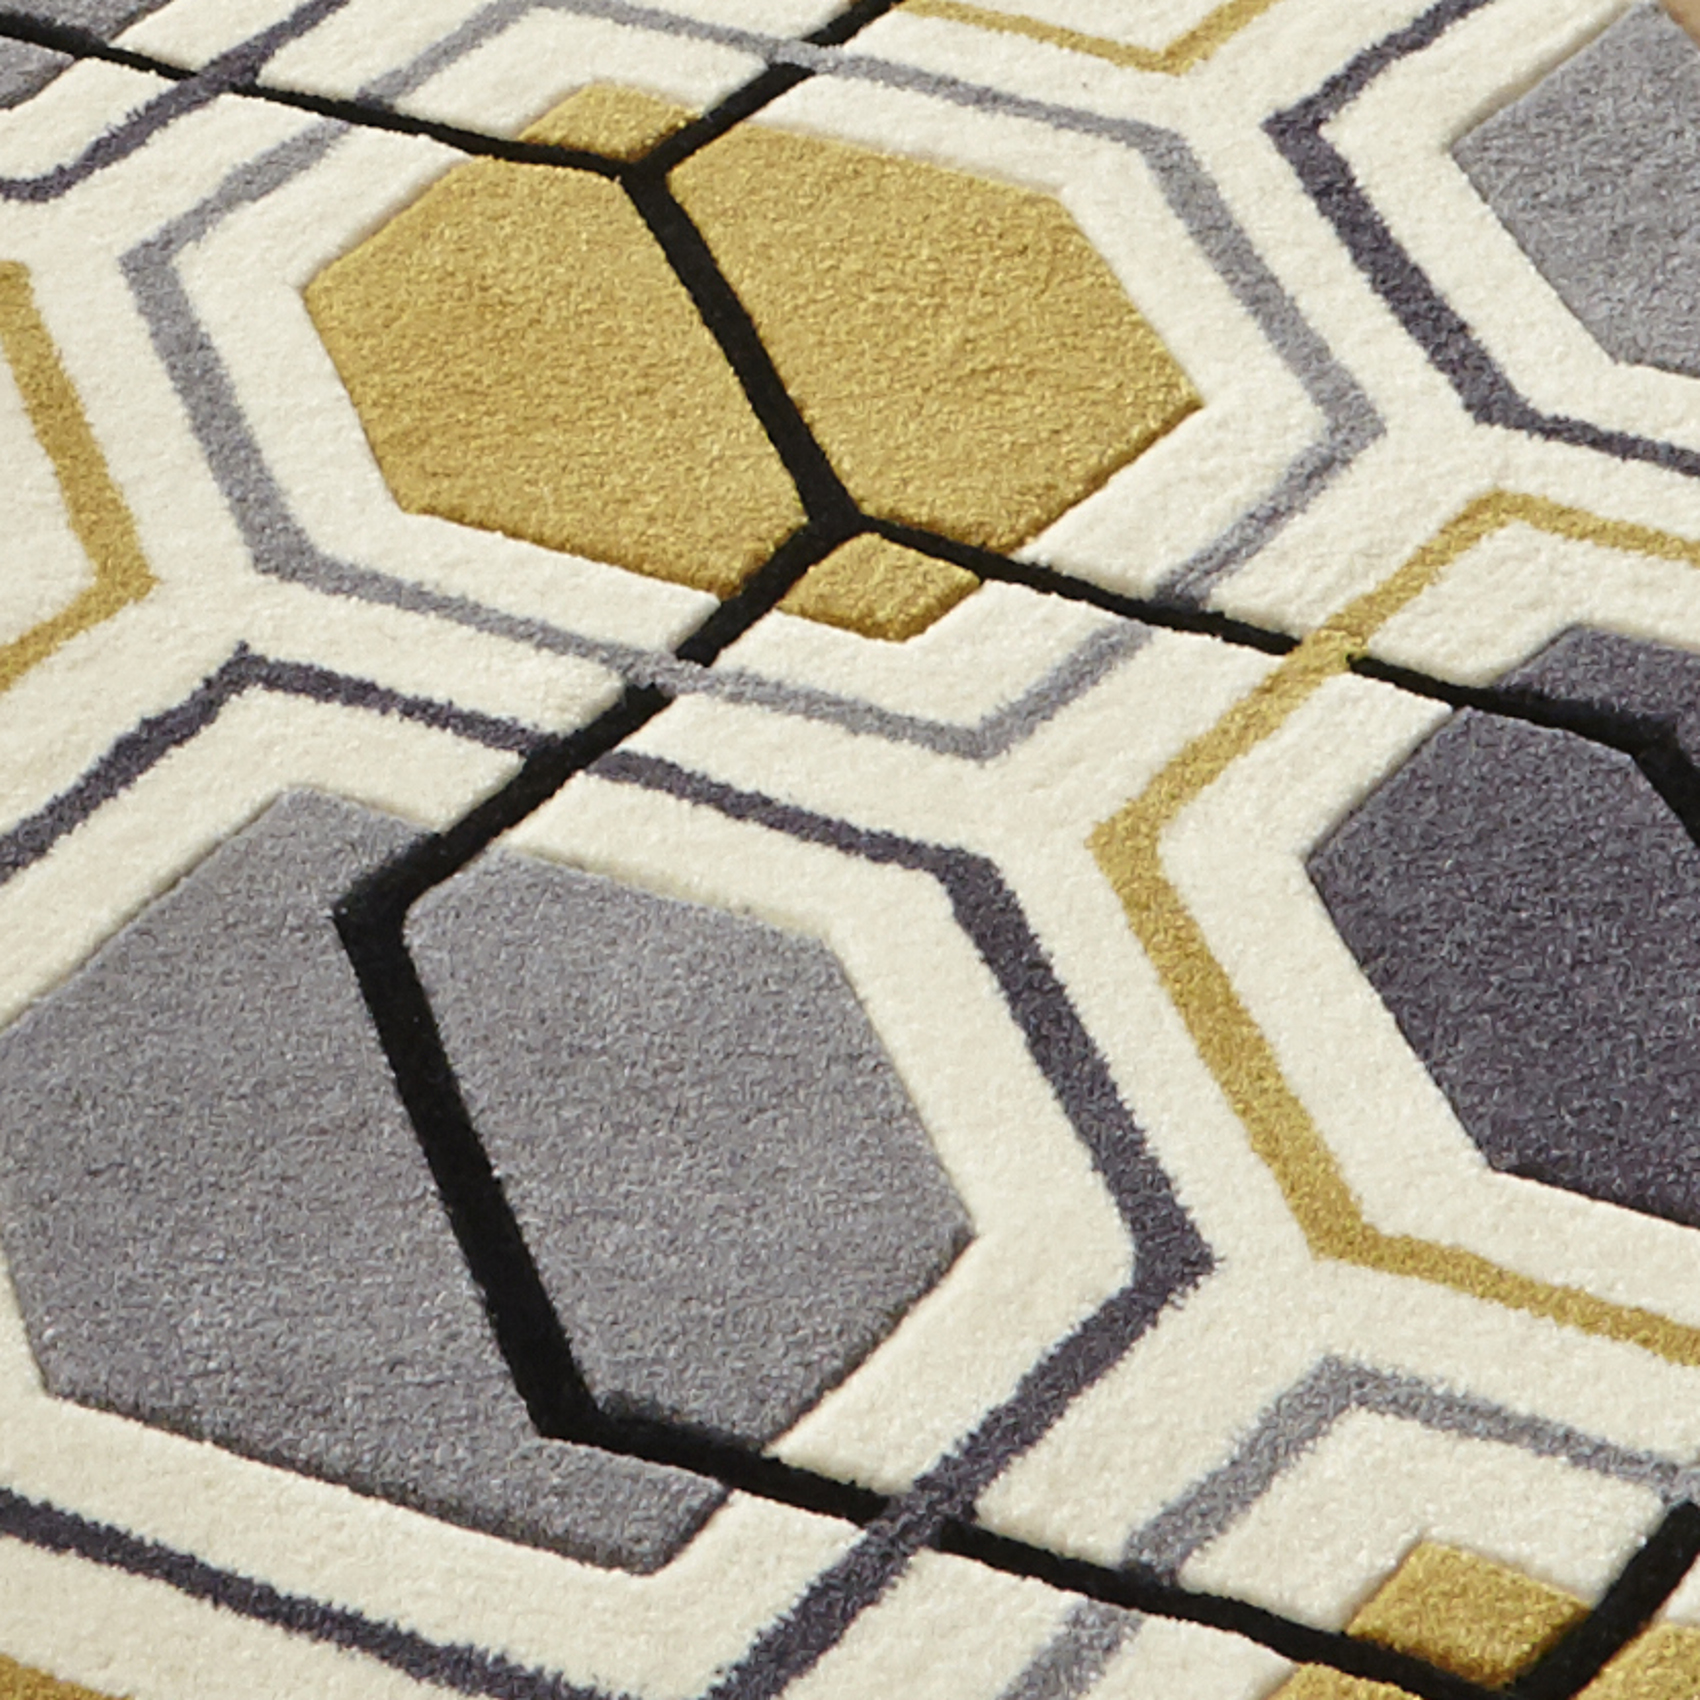 Hong Kong Hexagon Rug 100% Acrylic Hand Tufted Large